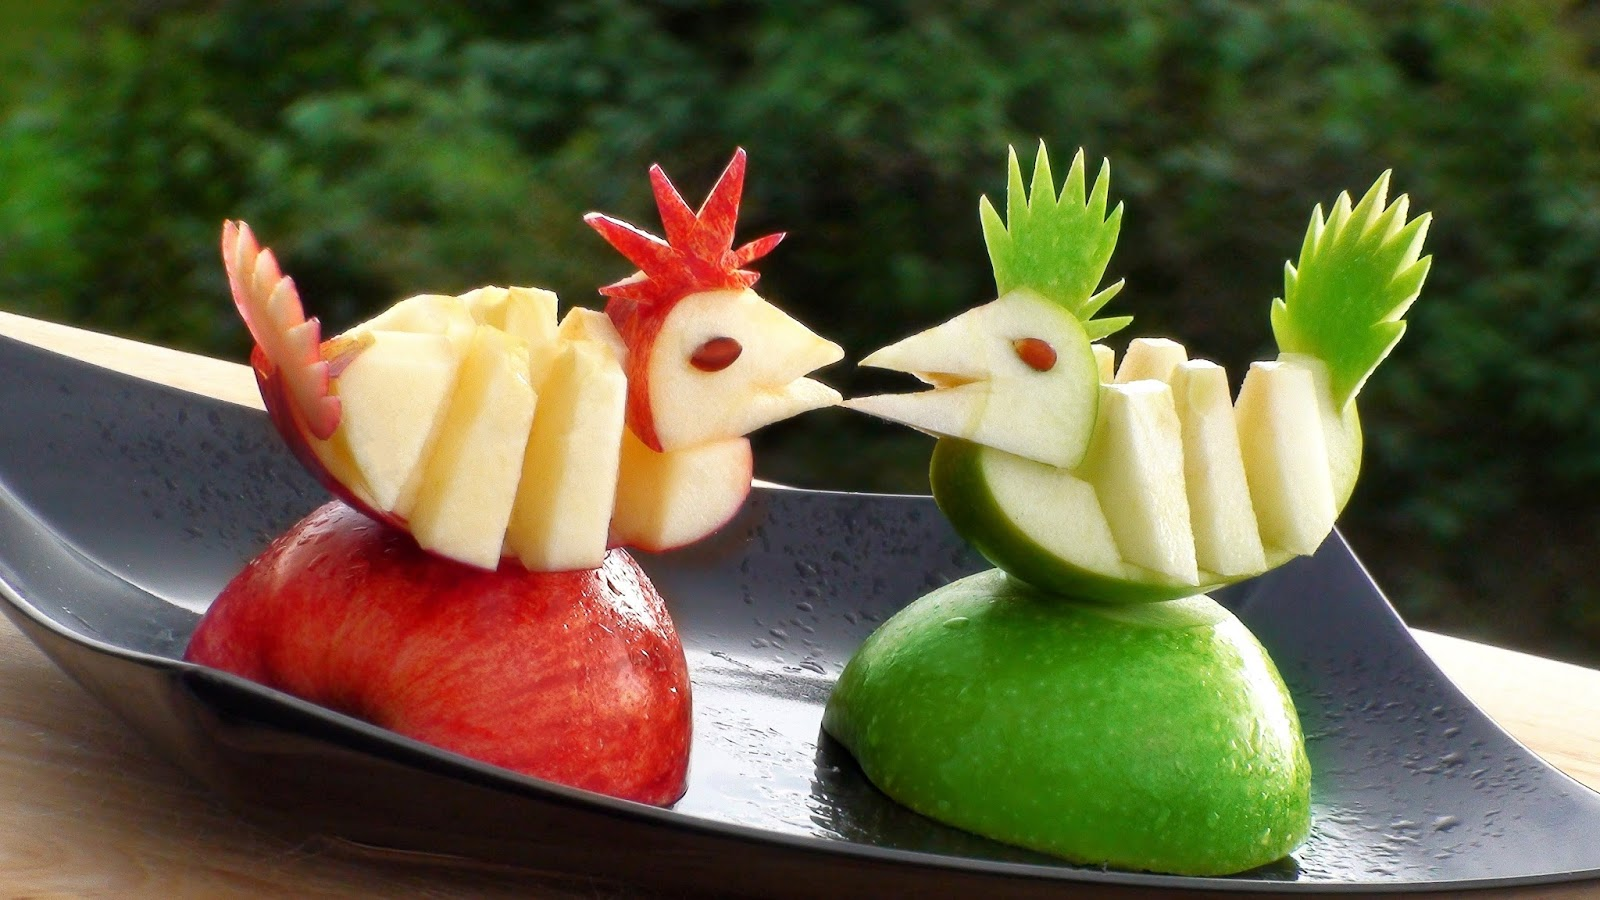 Fruit decoration art craft art ideas for Apples decoration